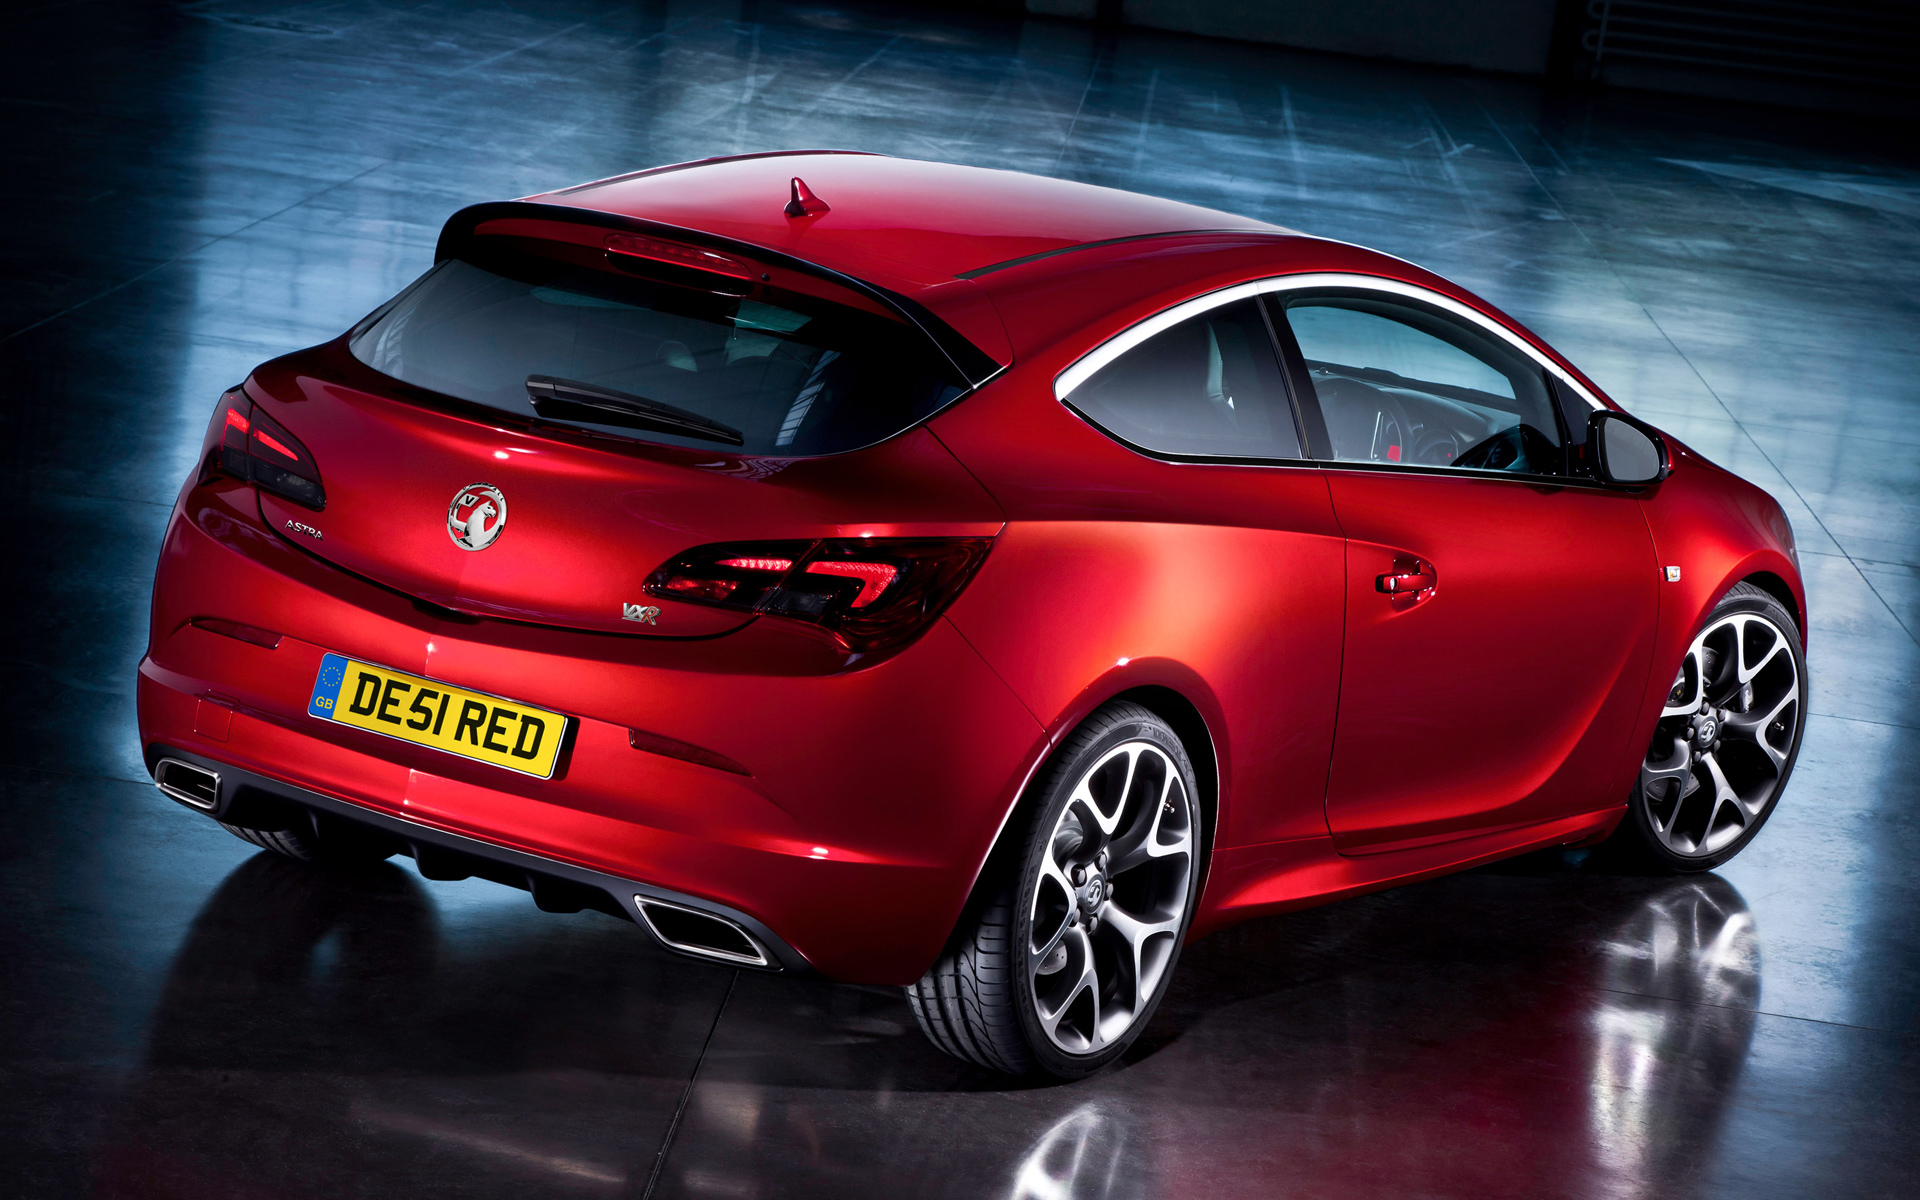 2012 vauxhall astra vxr 2 wallpaper hd car wallpapers id 2293. Black Bedroom Furniture Sets. Home Design Ideas